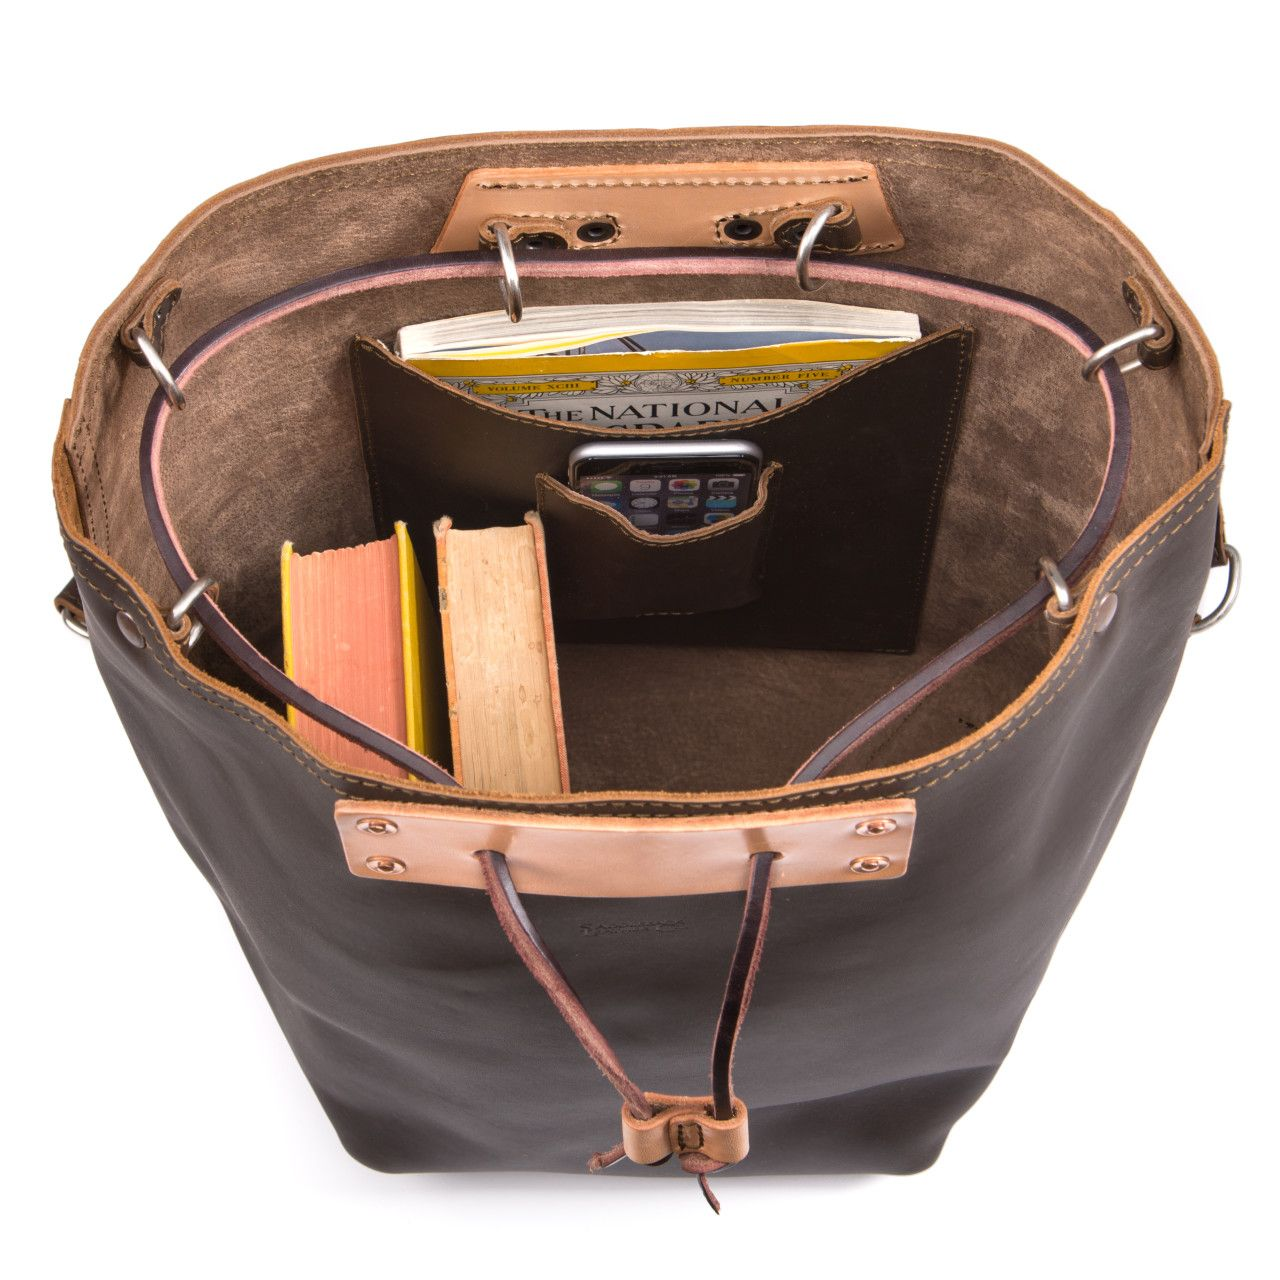 Two books, iphone, map in the inside of the bucket drawstring leather backpack in dark coffee brown leather